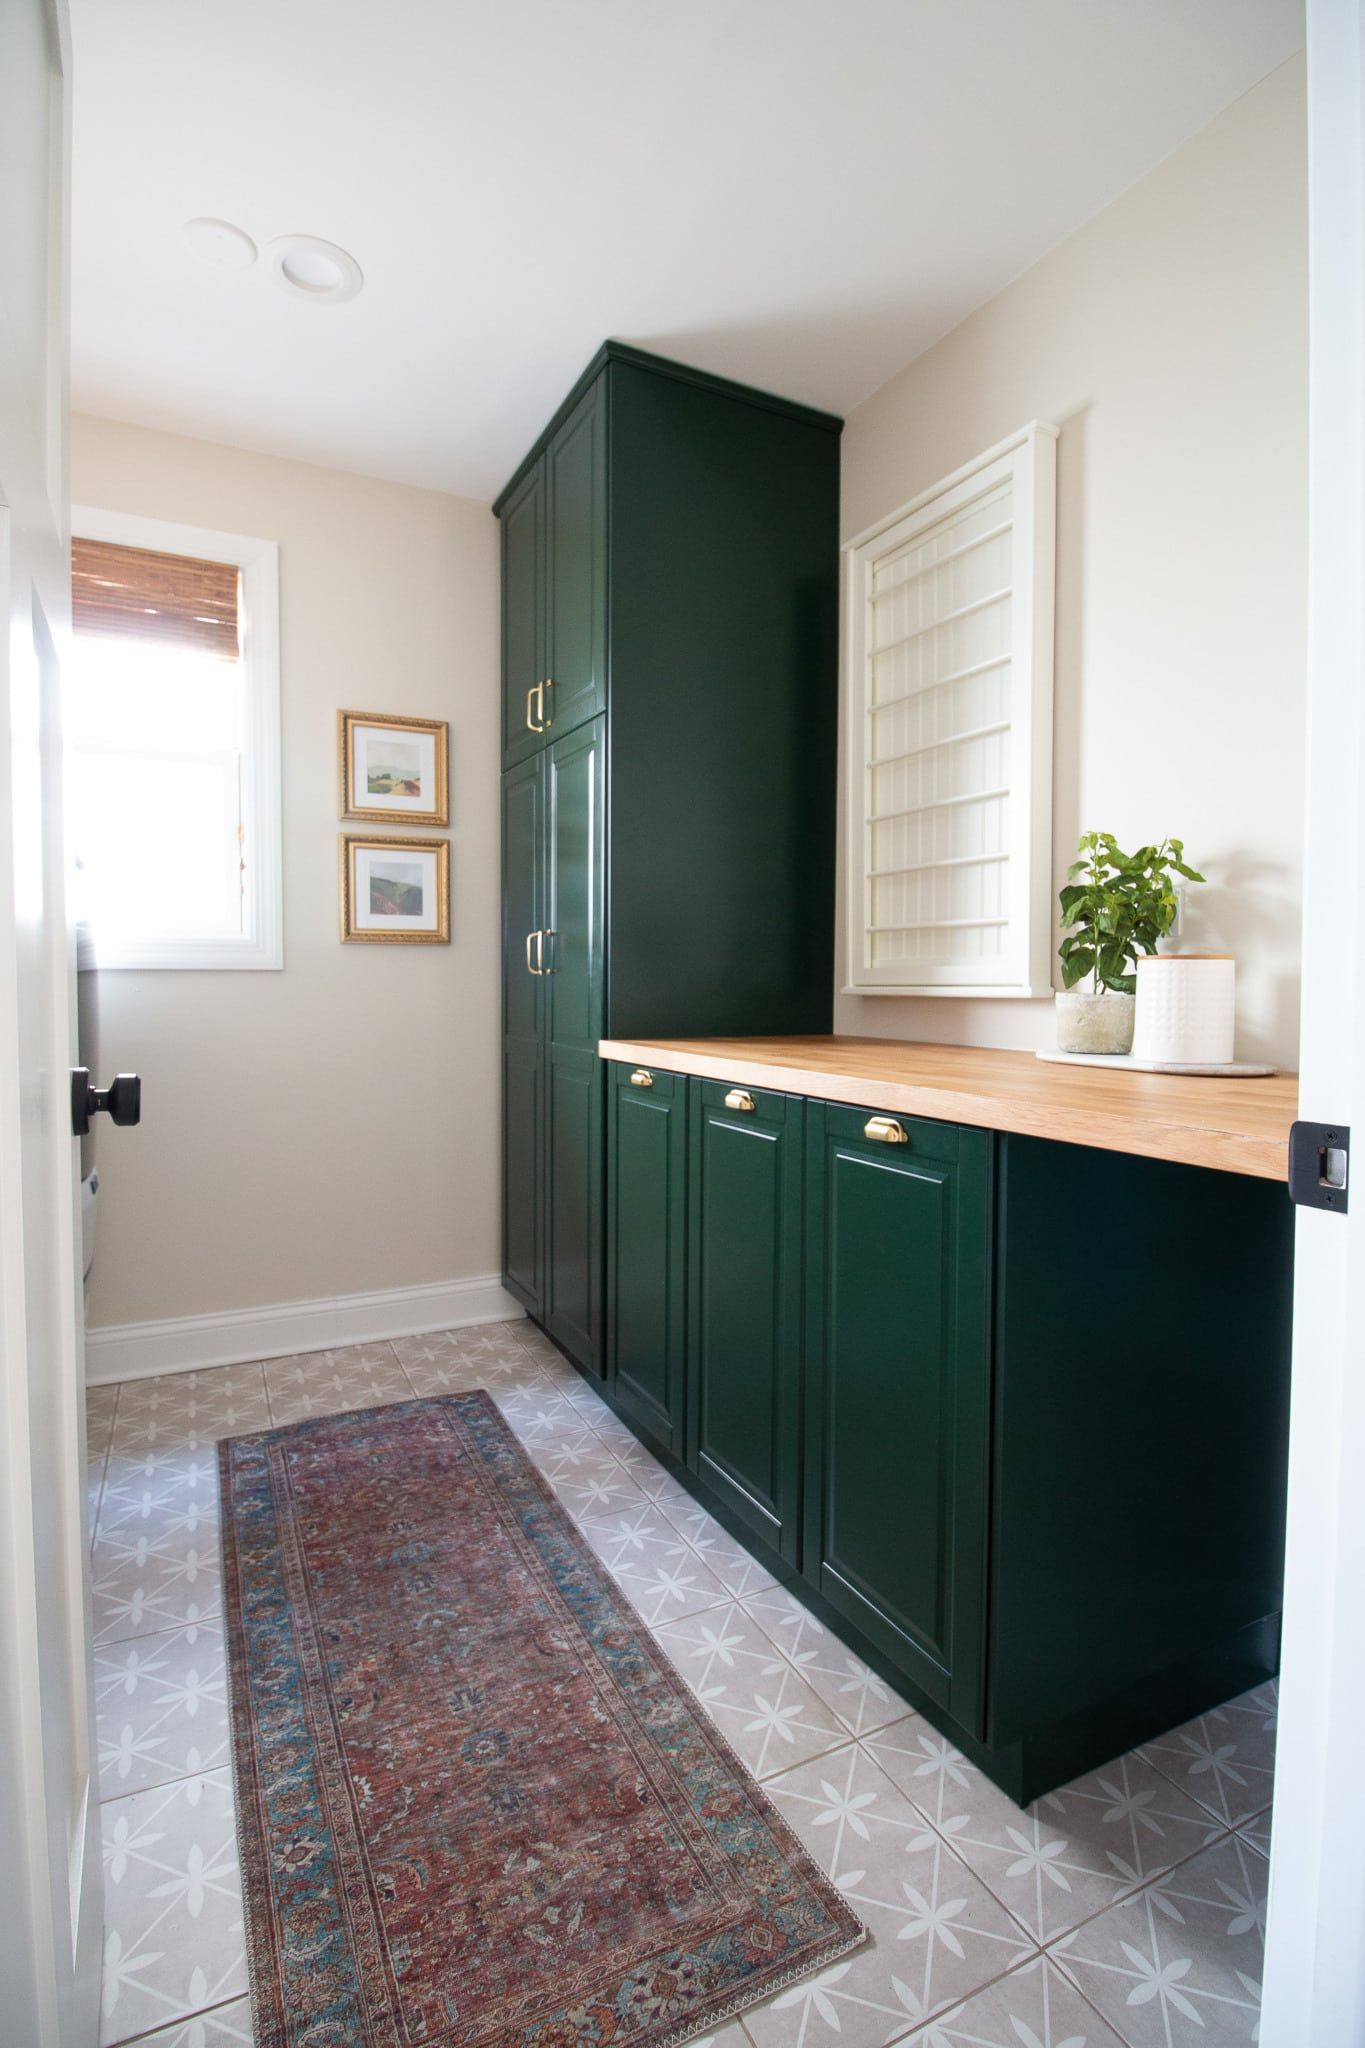 Figuring out home renovation budget for a laundry room project